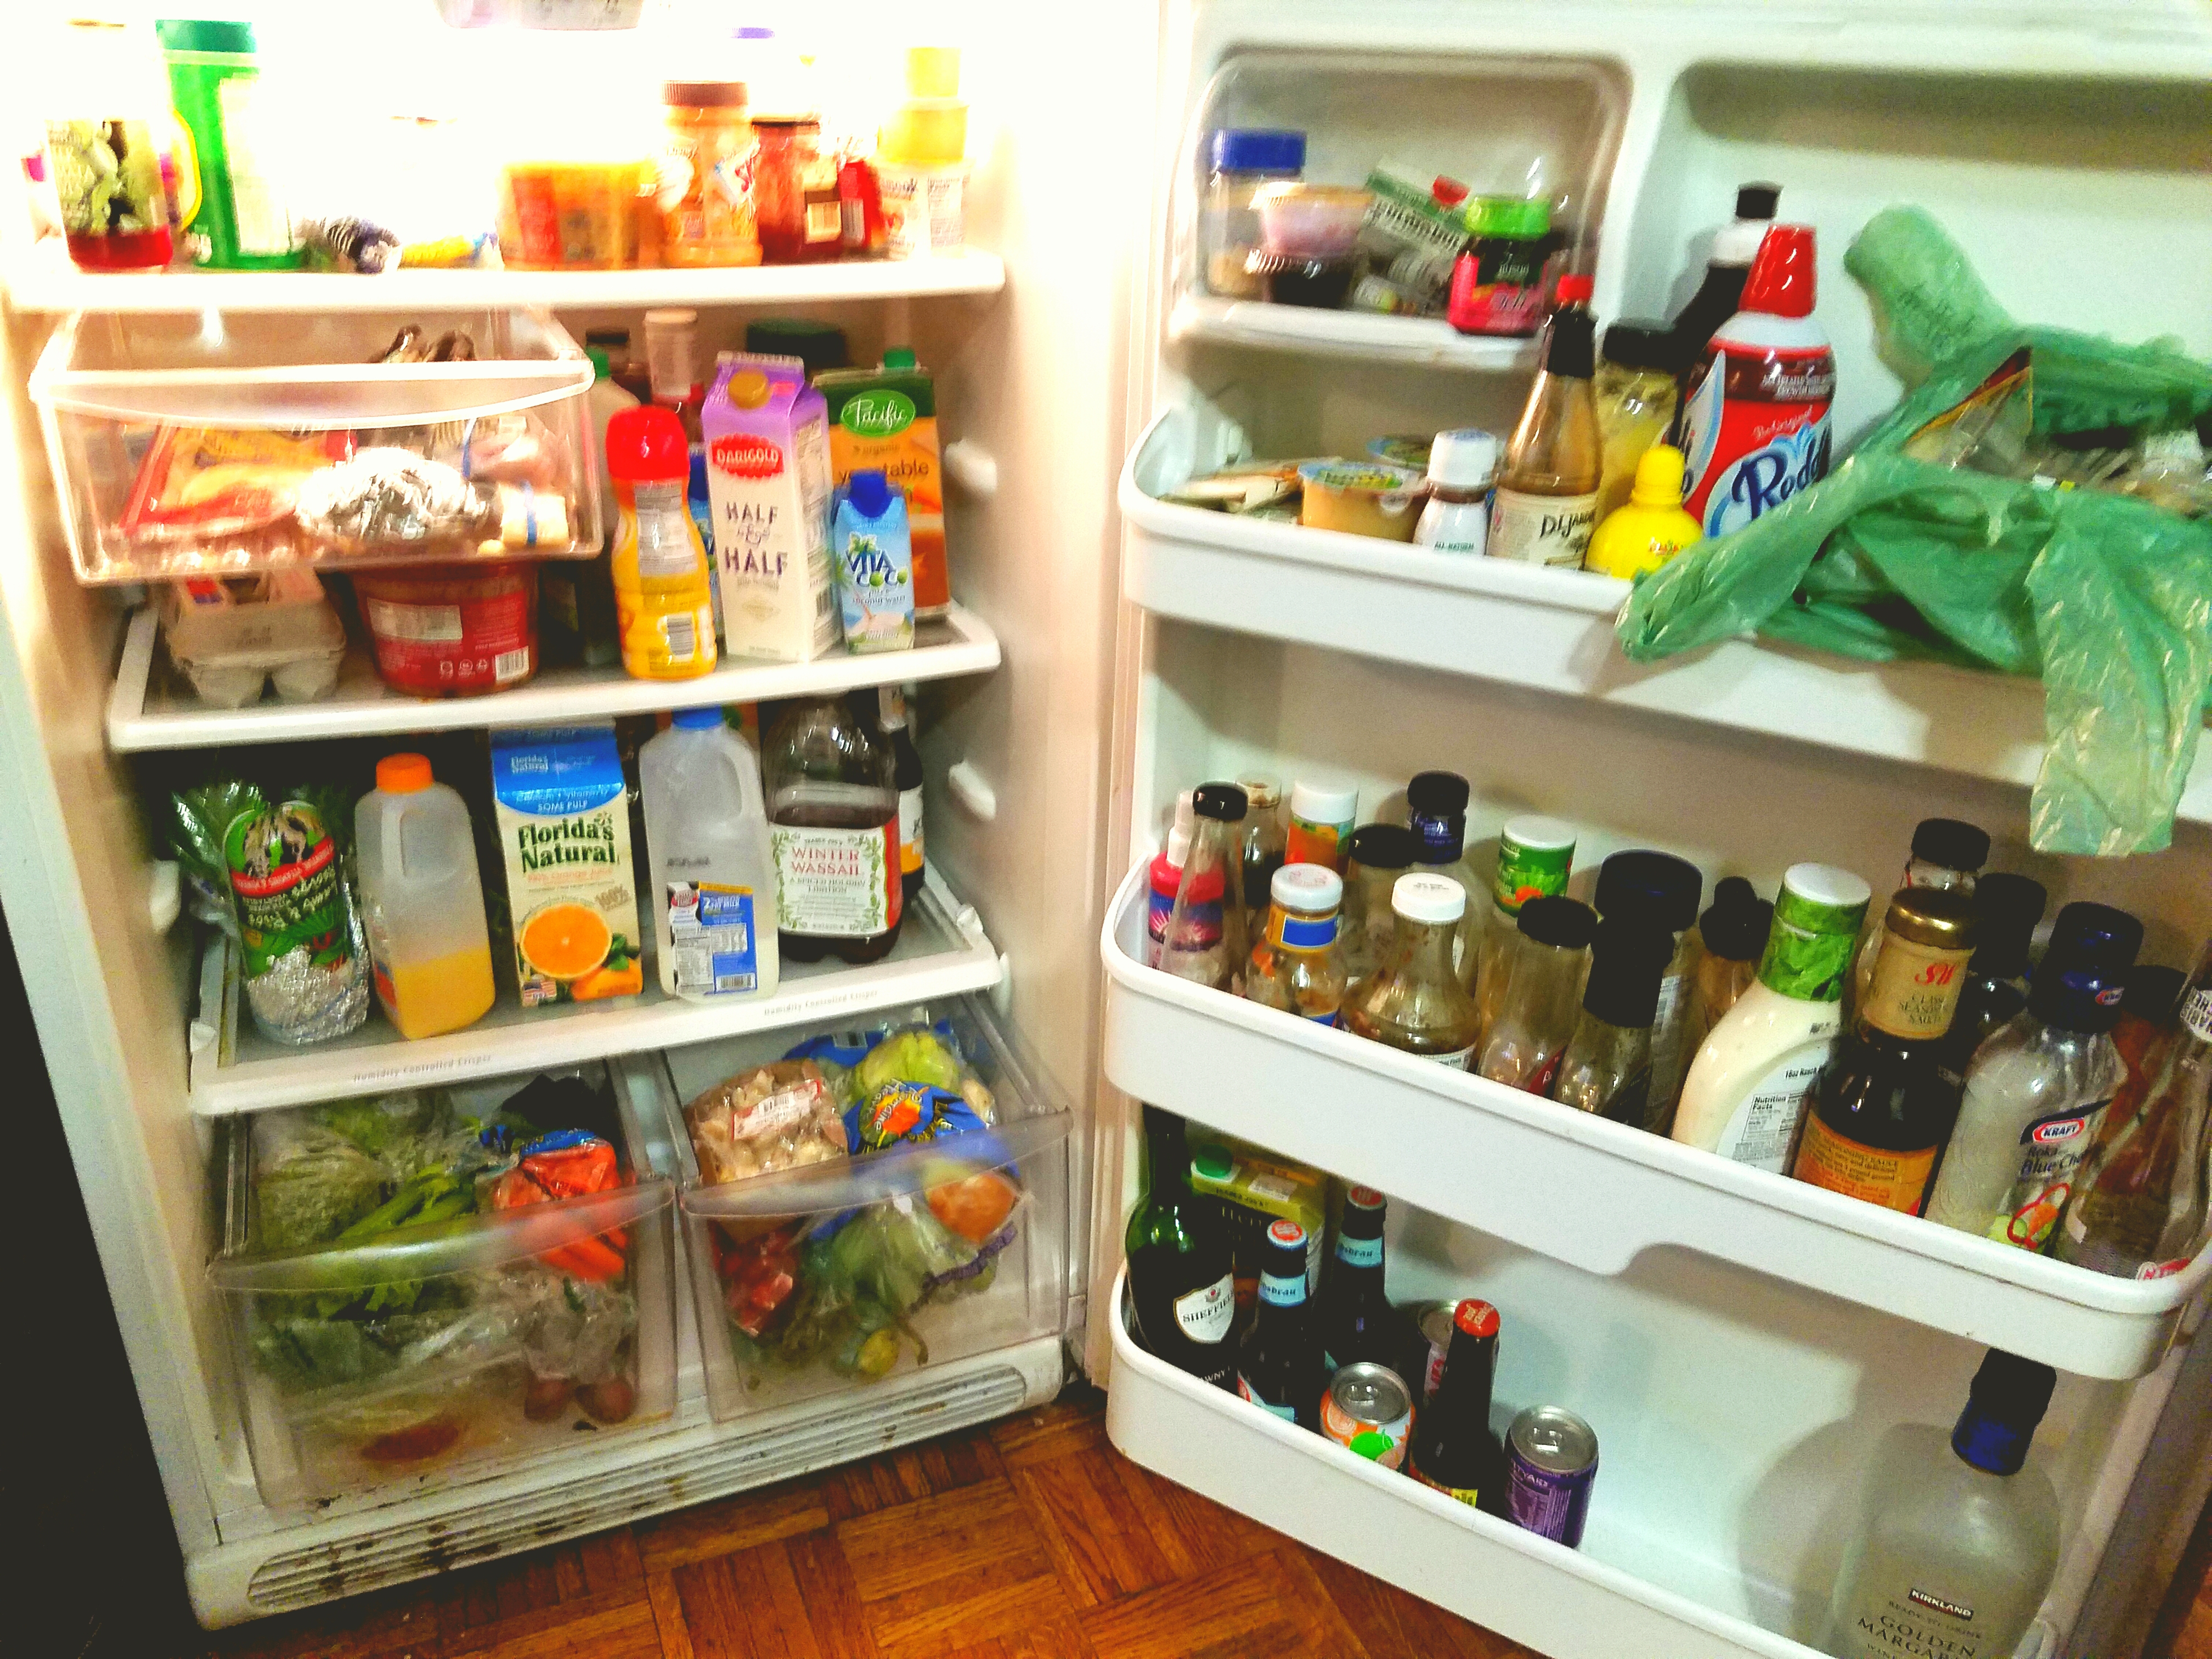 Strange Strategic Lessons From Cleaning My Fridge Management Pro Home Interior And Landscaping Transignezvosmurscom